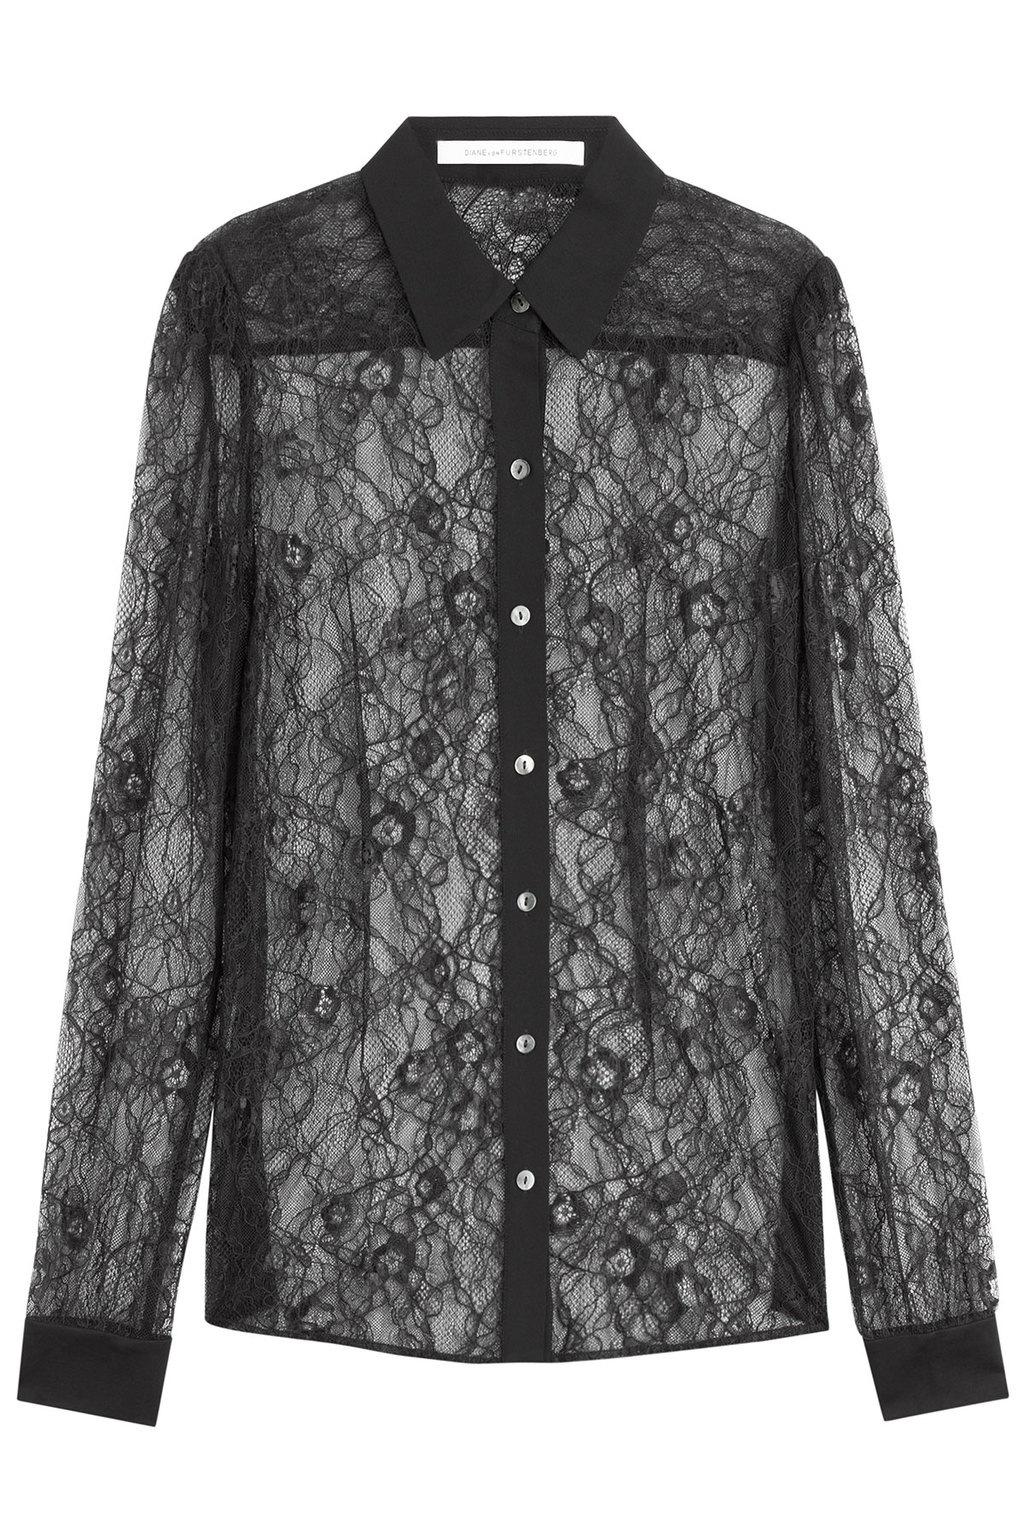 Lace Blouse Black - neckline: shirt collar/peter pan/zip with opening; length: below the bottom; style: shirt; predominant colour: black; fit: straight cut; sleeve length: long sleeve; sleeve style: standard; texture group: lace; pattern size: standard; pattern: patterned/print; season: a/w 2015; trends: romantic goth